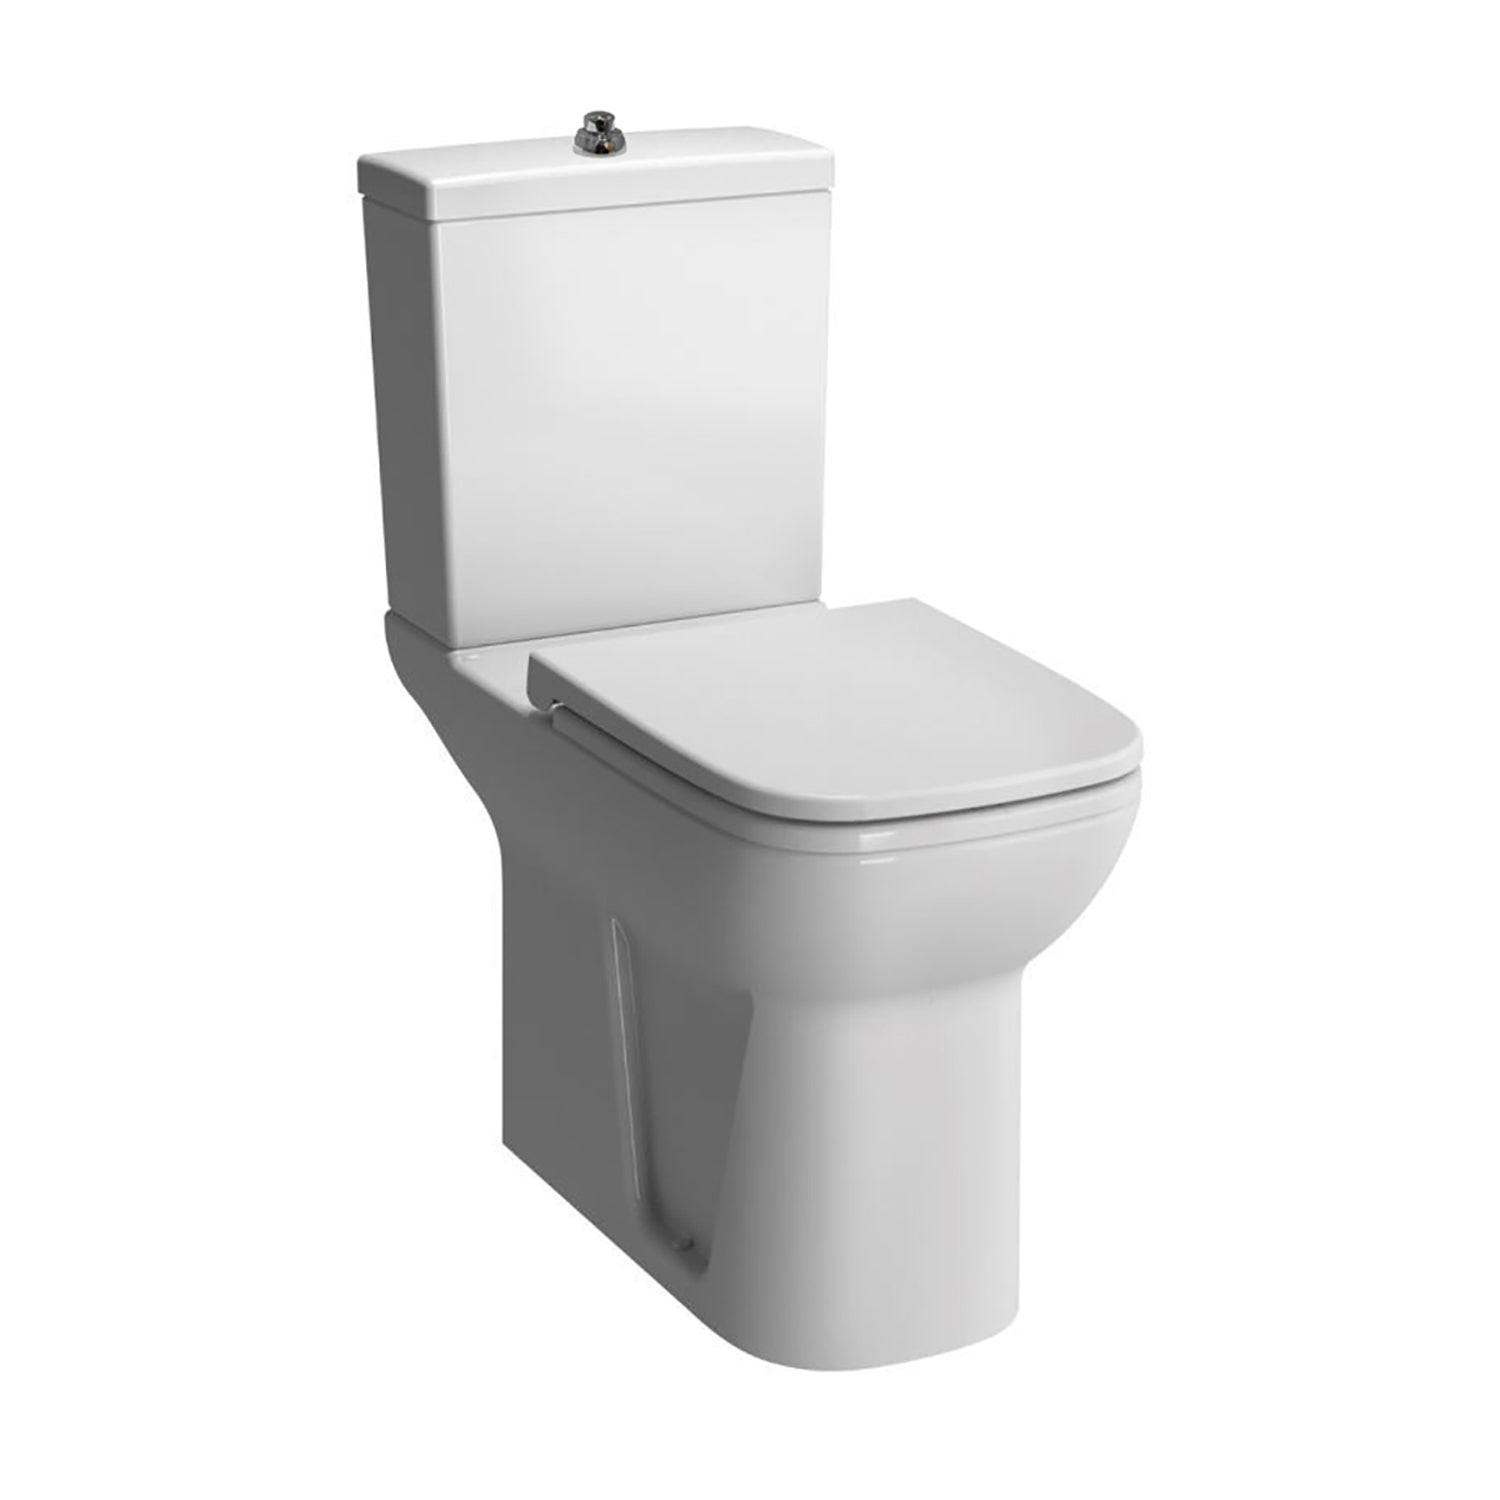 Consilio Comfort Height Close Coupled Toilet with the seat and cistern on a white background